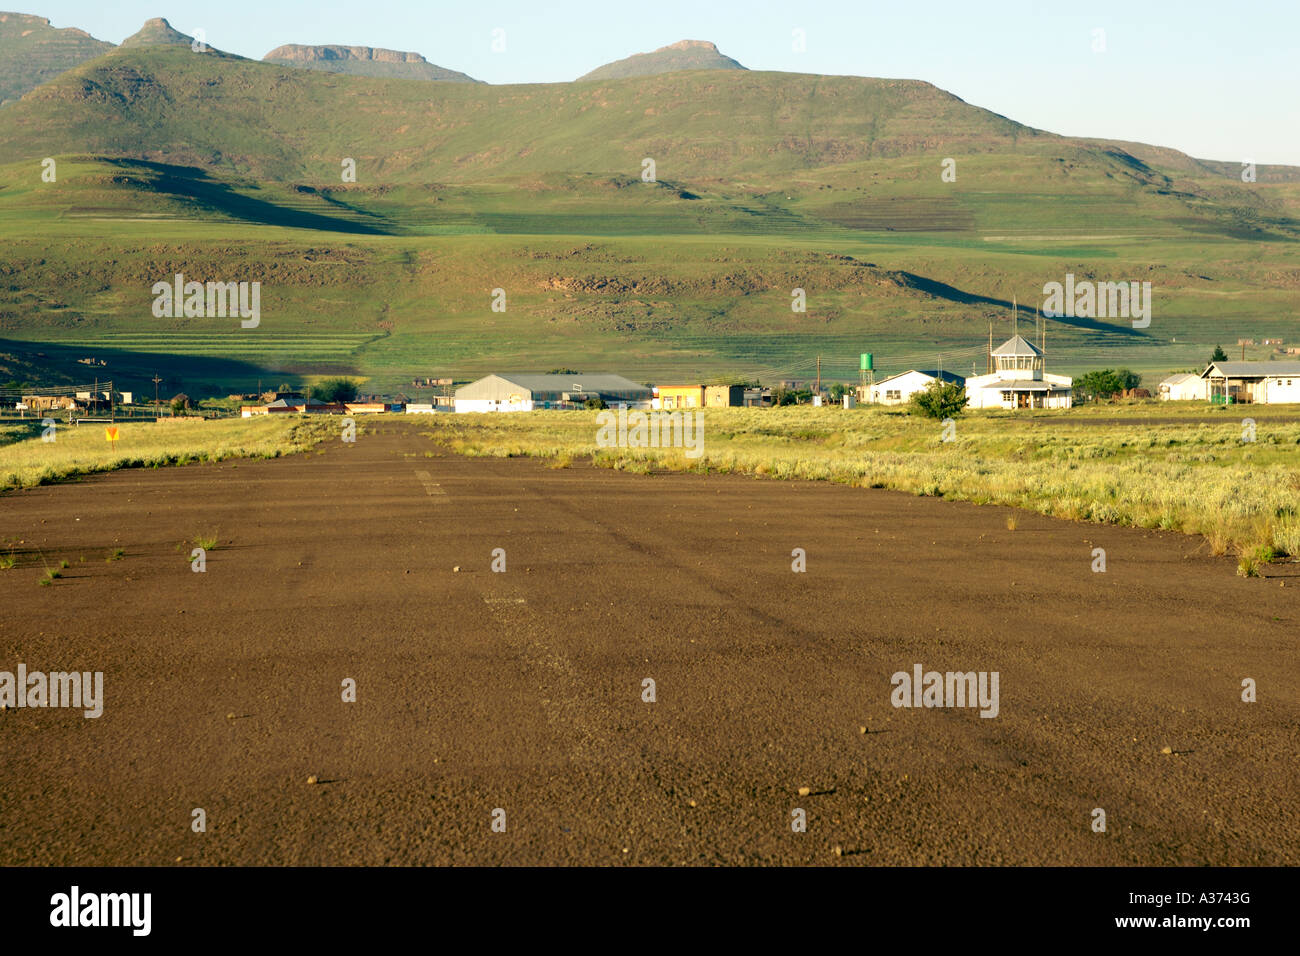 The airfield in the mountain village of Semonkong in Lesotho. - Stock Image